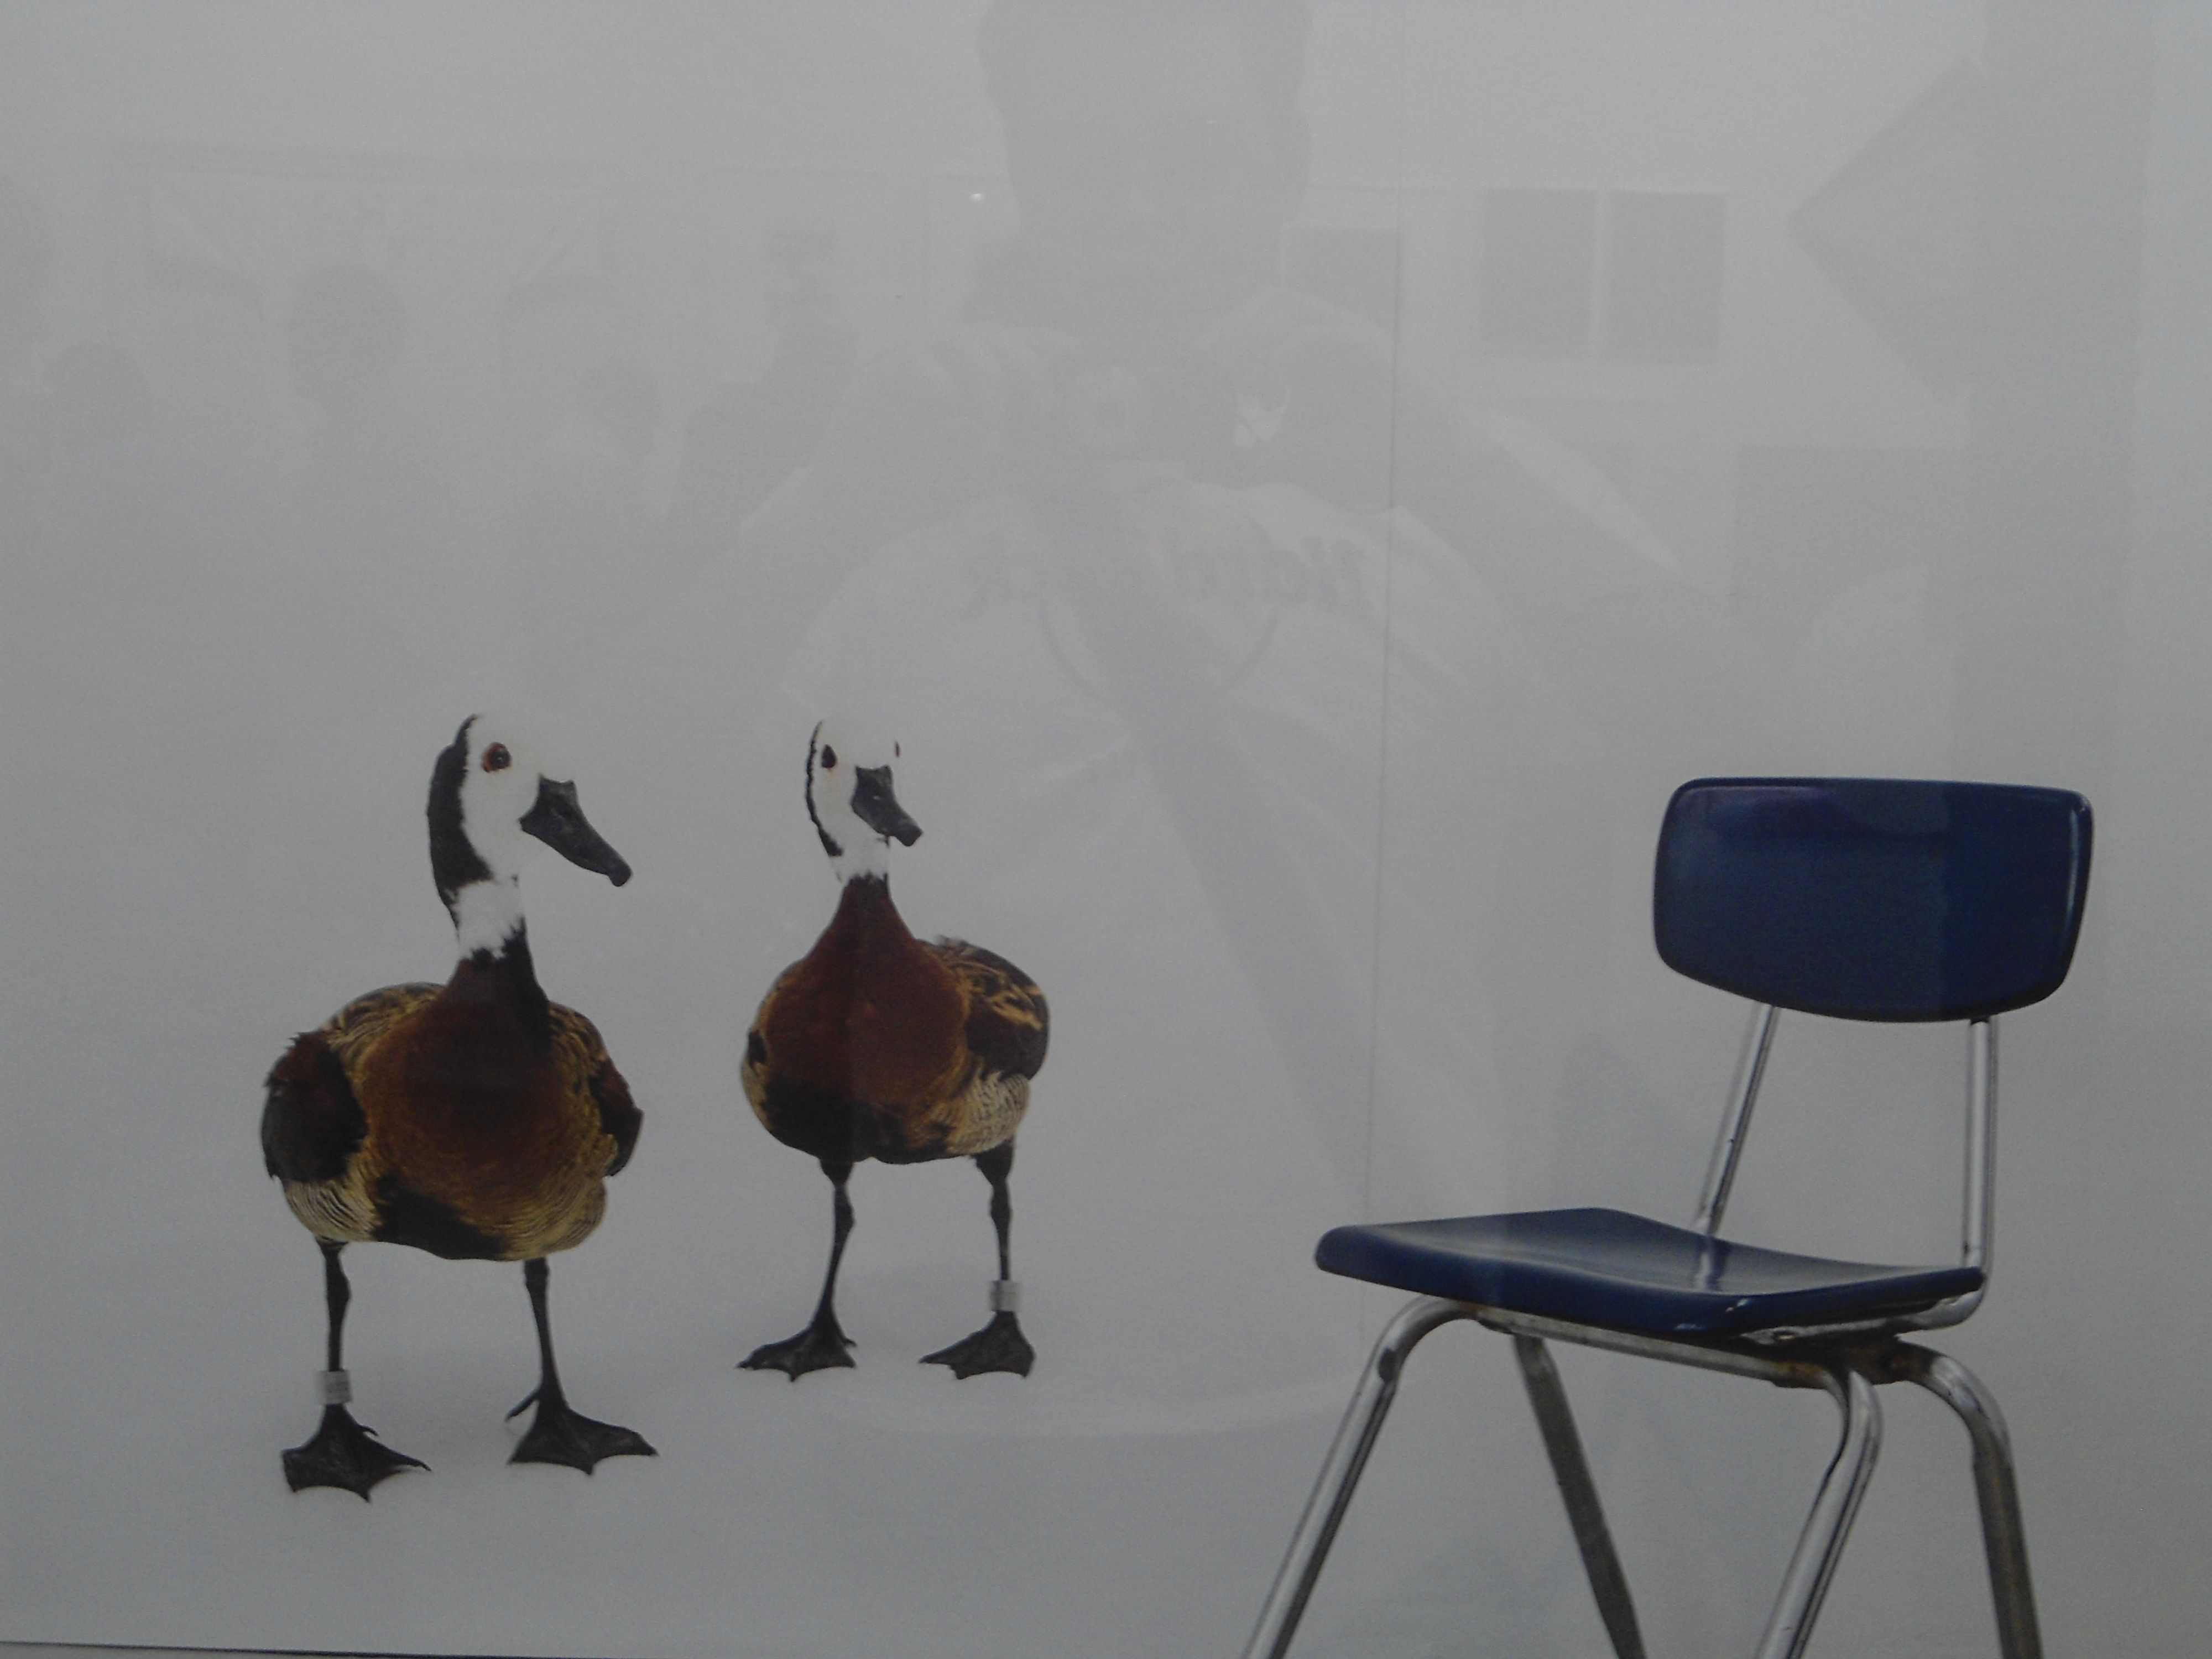 Ducks looking for chair